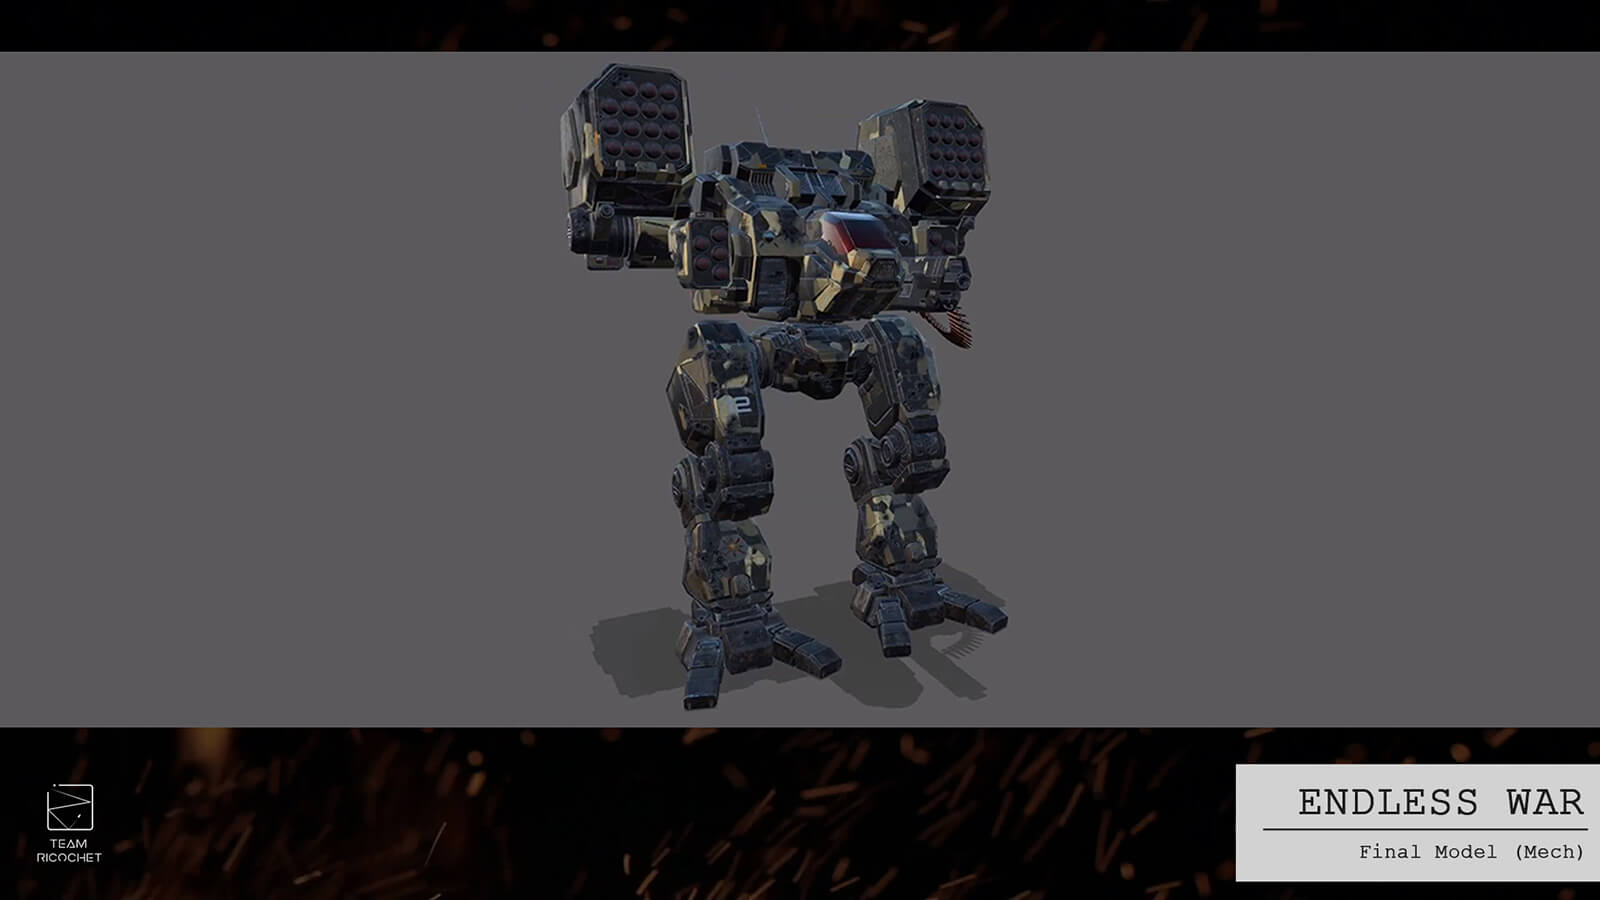 Textured 3D model for an armored battle mech.